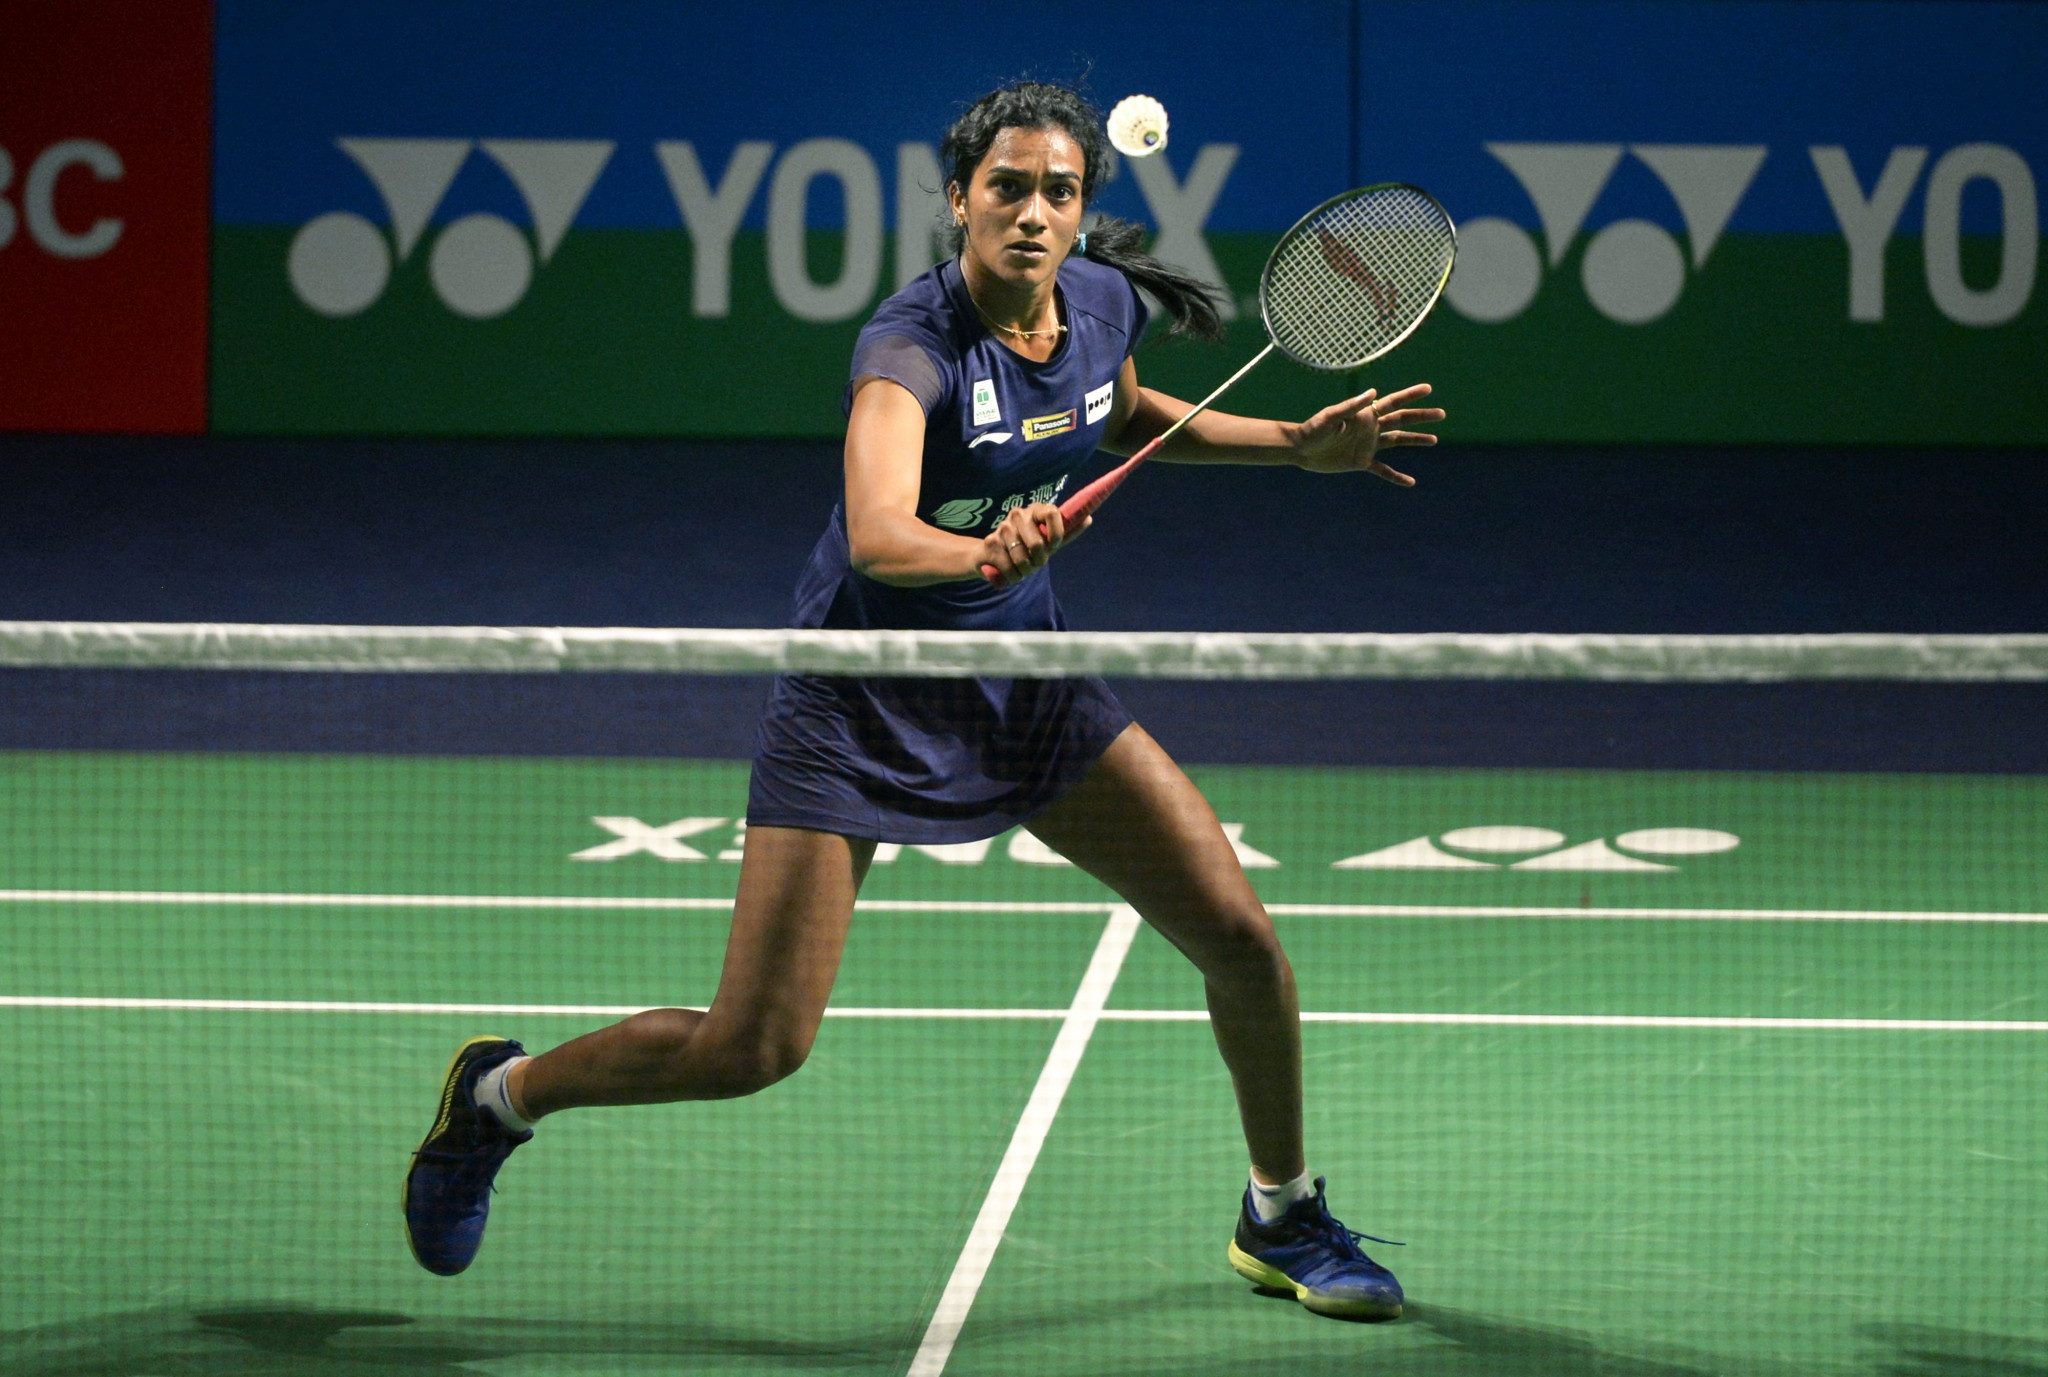 India's Pusarla Venkata Sindhu won her opening match of the BWF Malaysia Open ©Getty Images